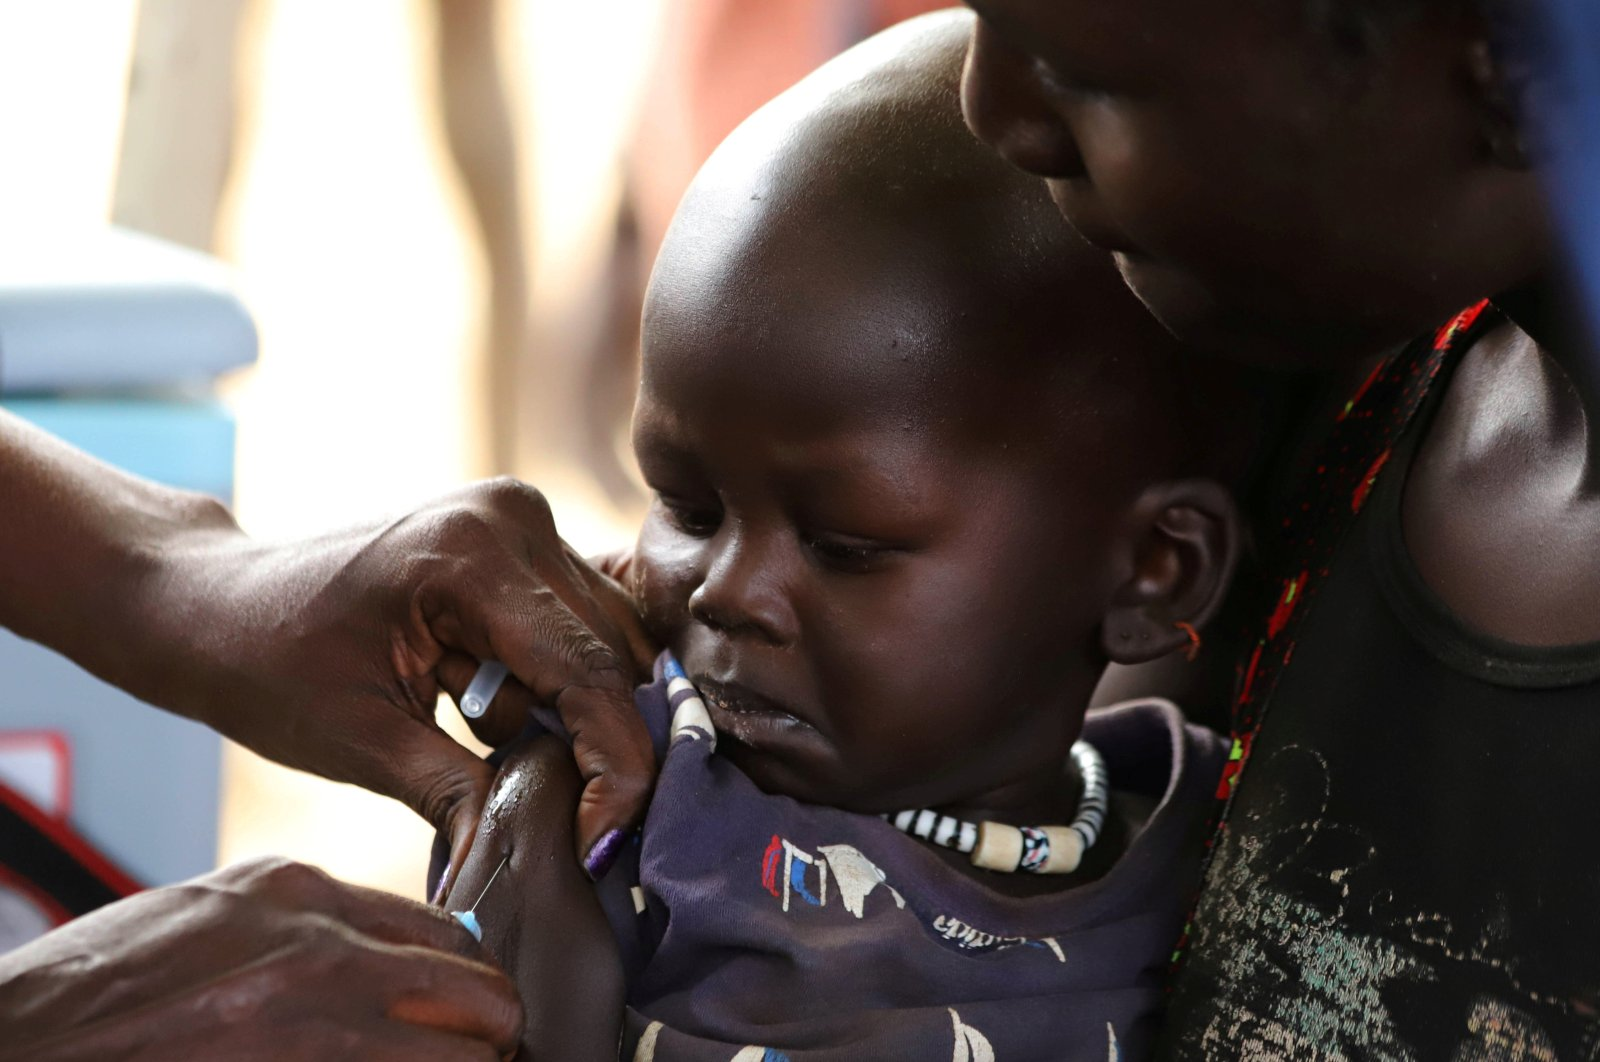 A South Sudanese child receives a vaccination against measles during a campaign in Juba, South Sudan, Feb. 4, 2020. (Reuters Photo)